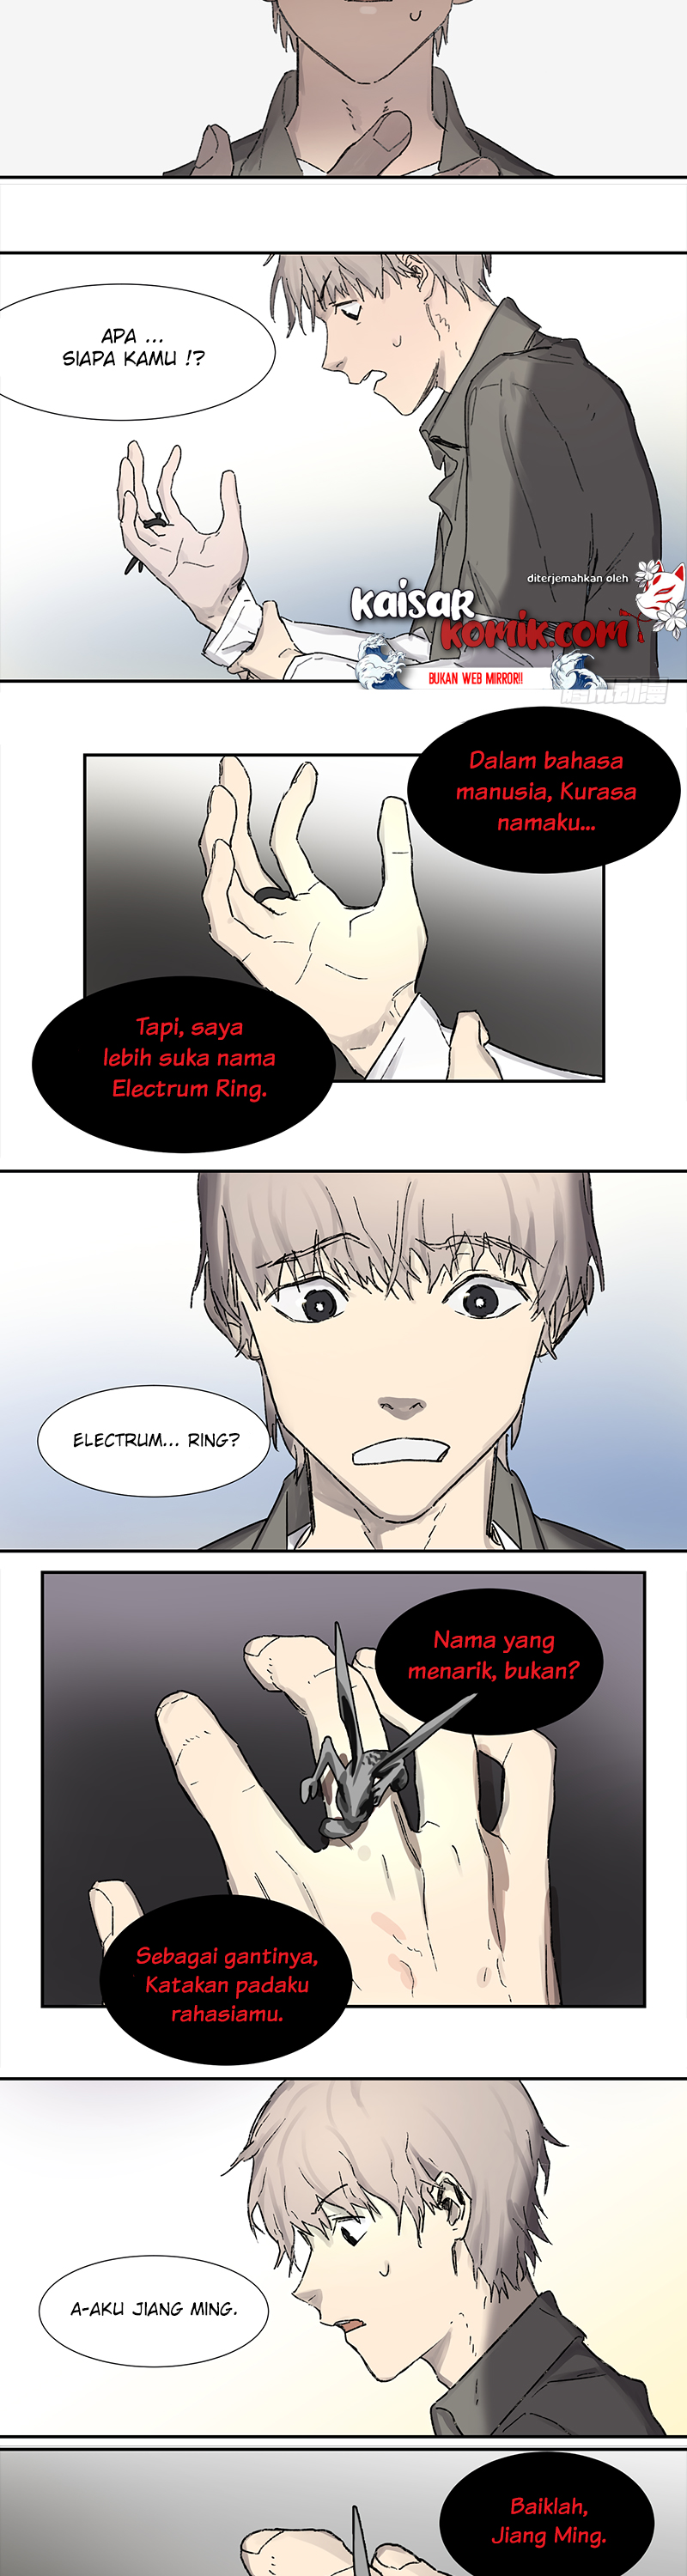 Spoiler Manhua Game of the Strong 1